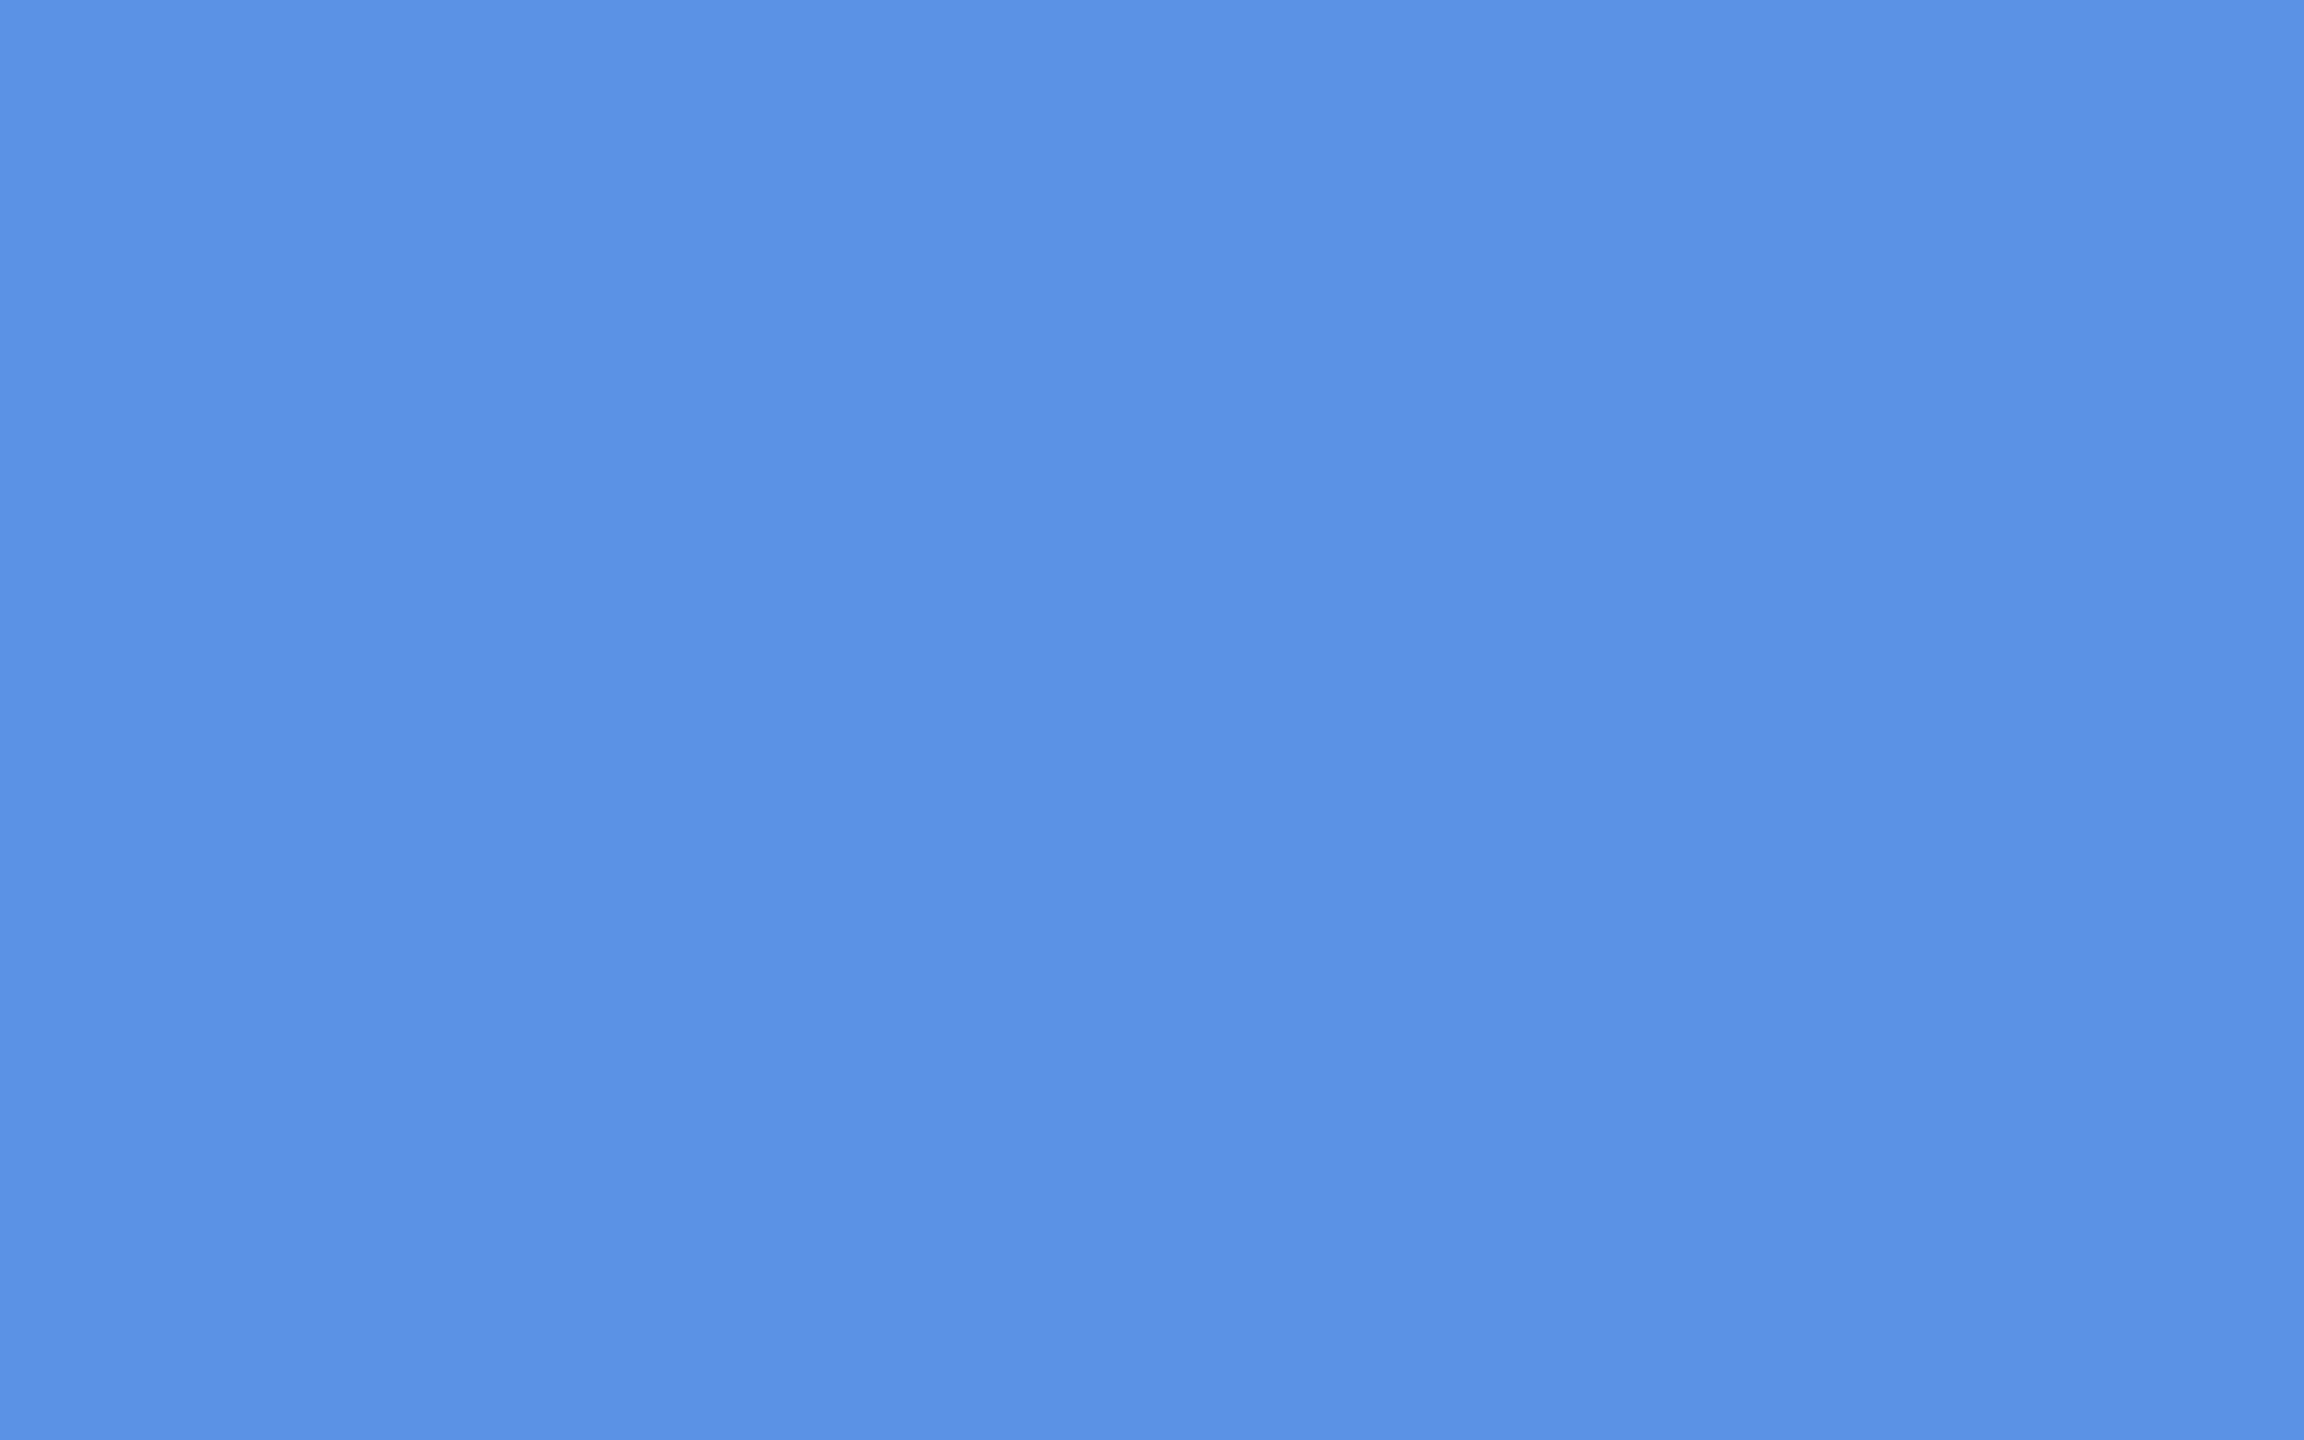 2304x1440 United Nations Blue Solid Color Background